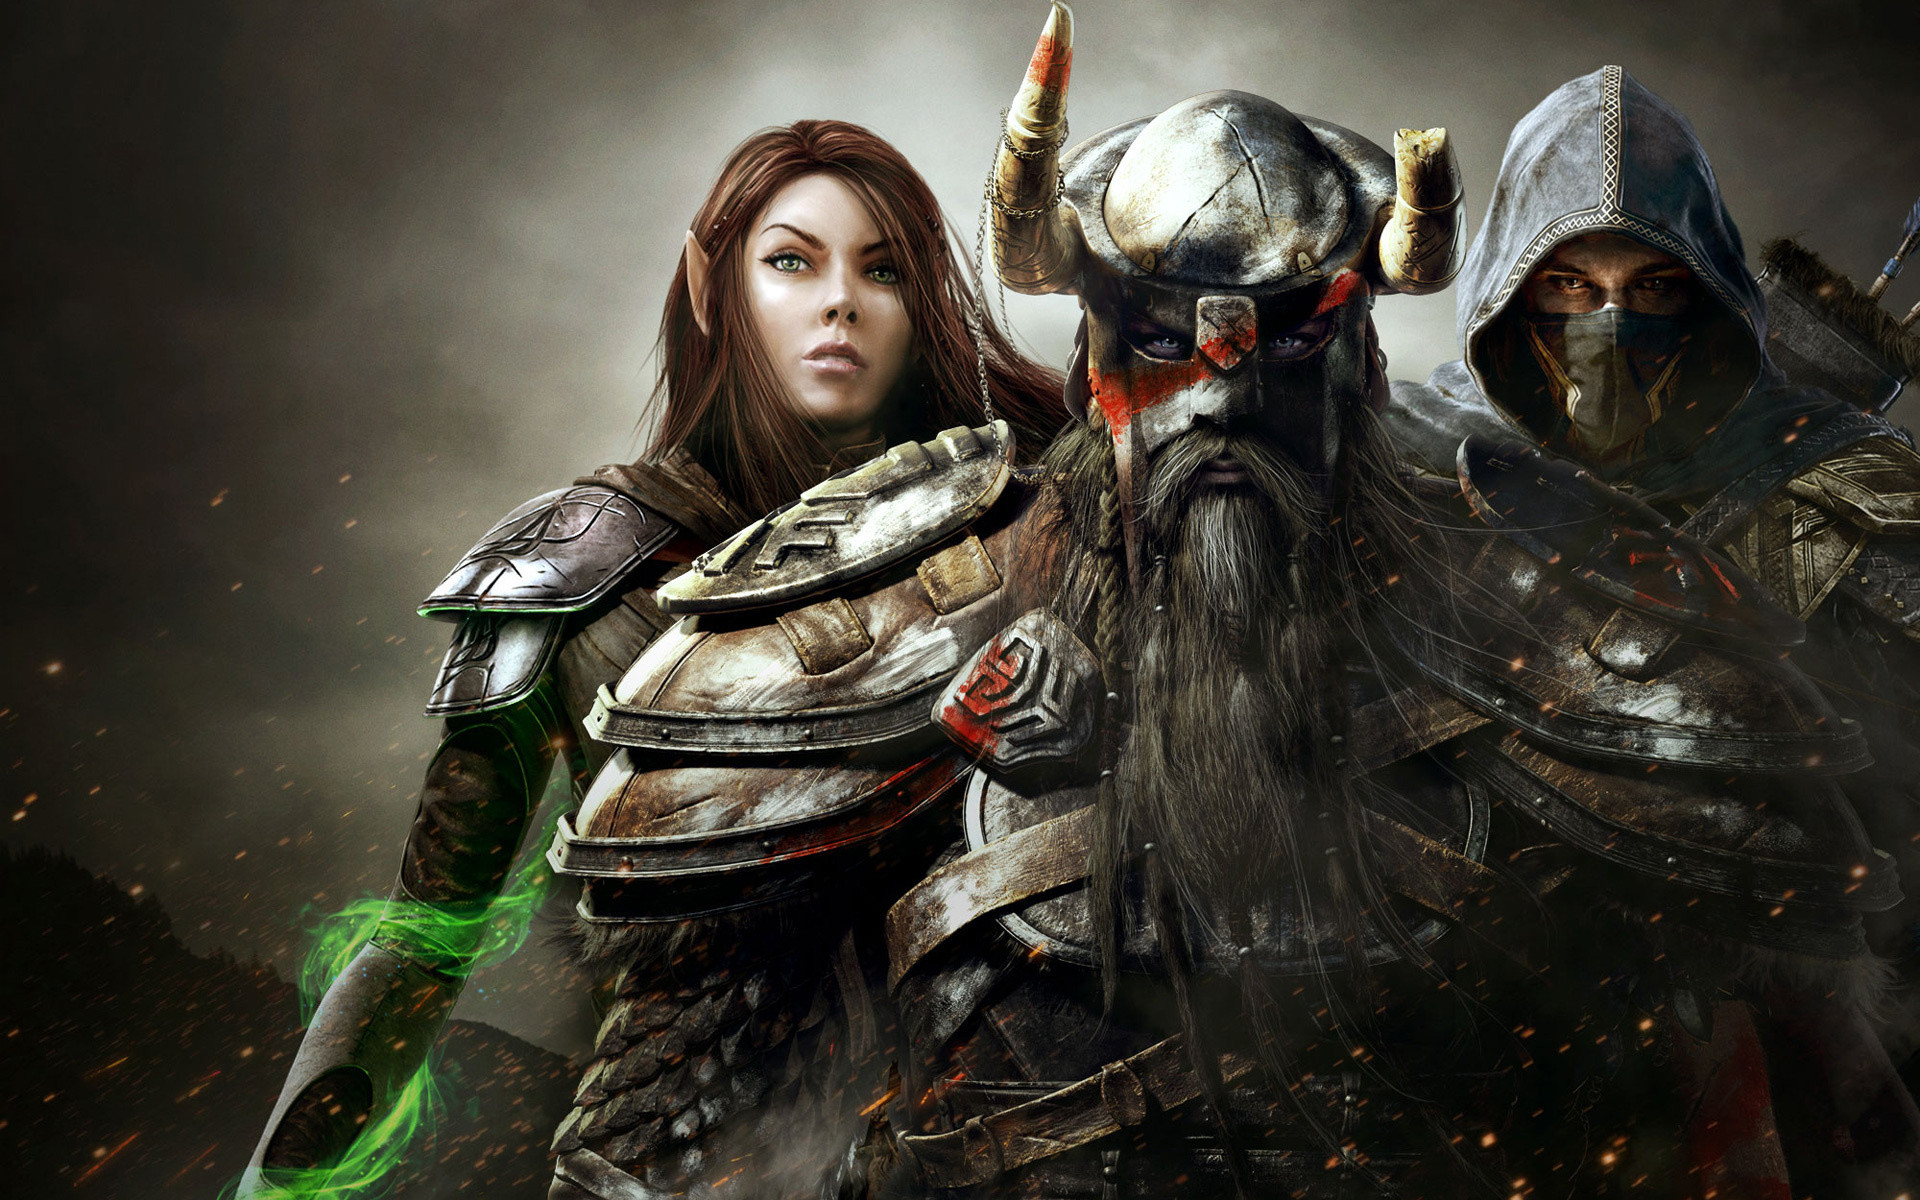 1920x1200 Explore The Elder Scrolls, Elder Scrolls Skyrim and more!